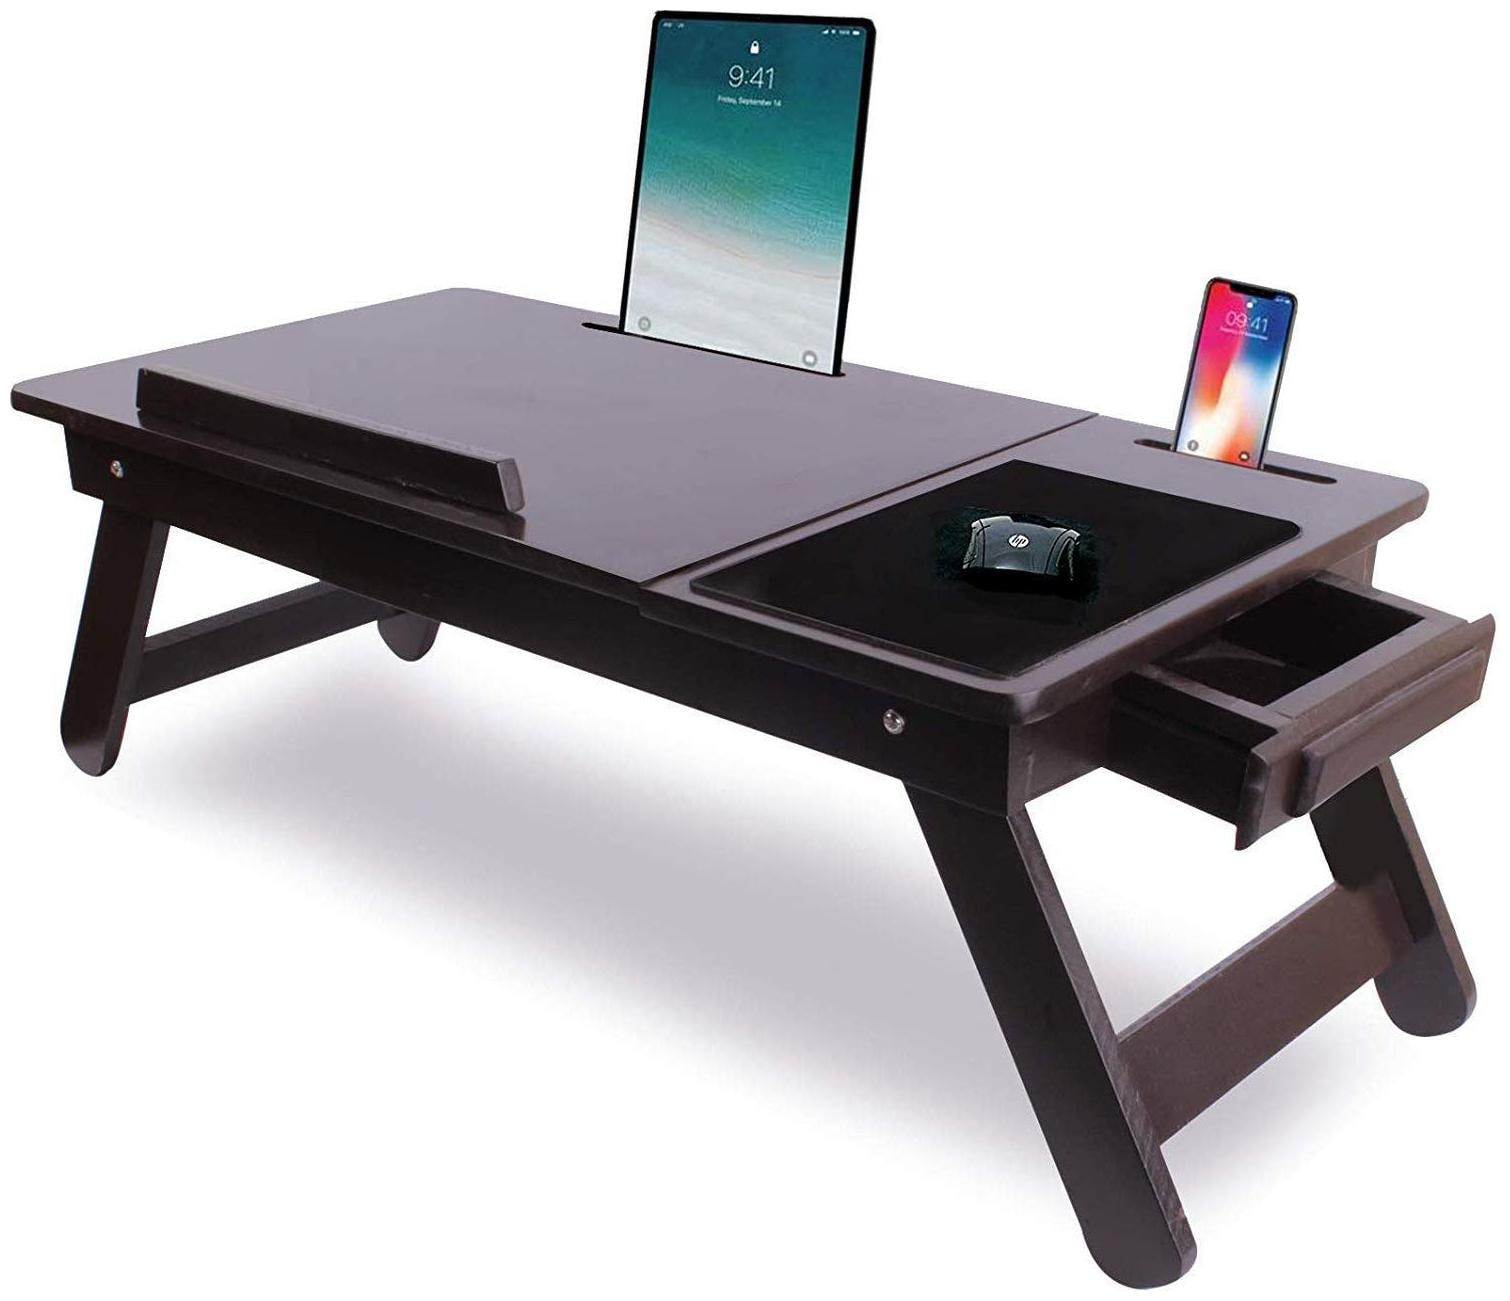 IBS Wooden Adjustable Foldable Multi-Function Portable Laptop Table/Study Table